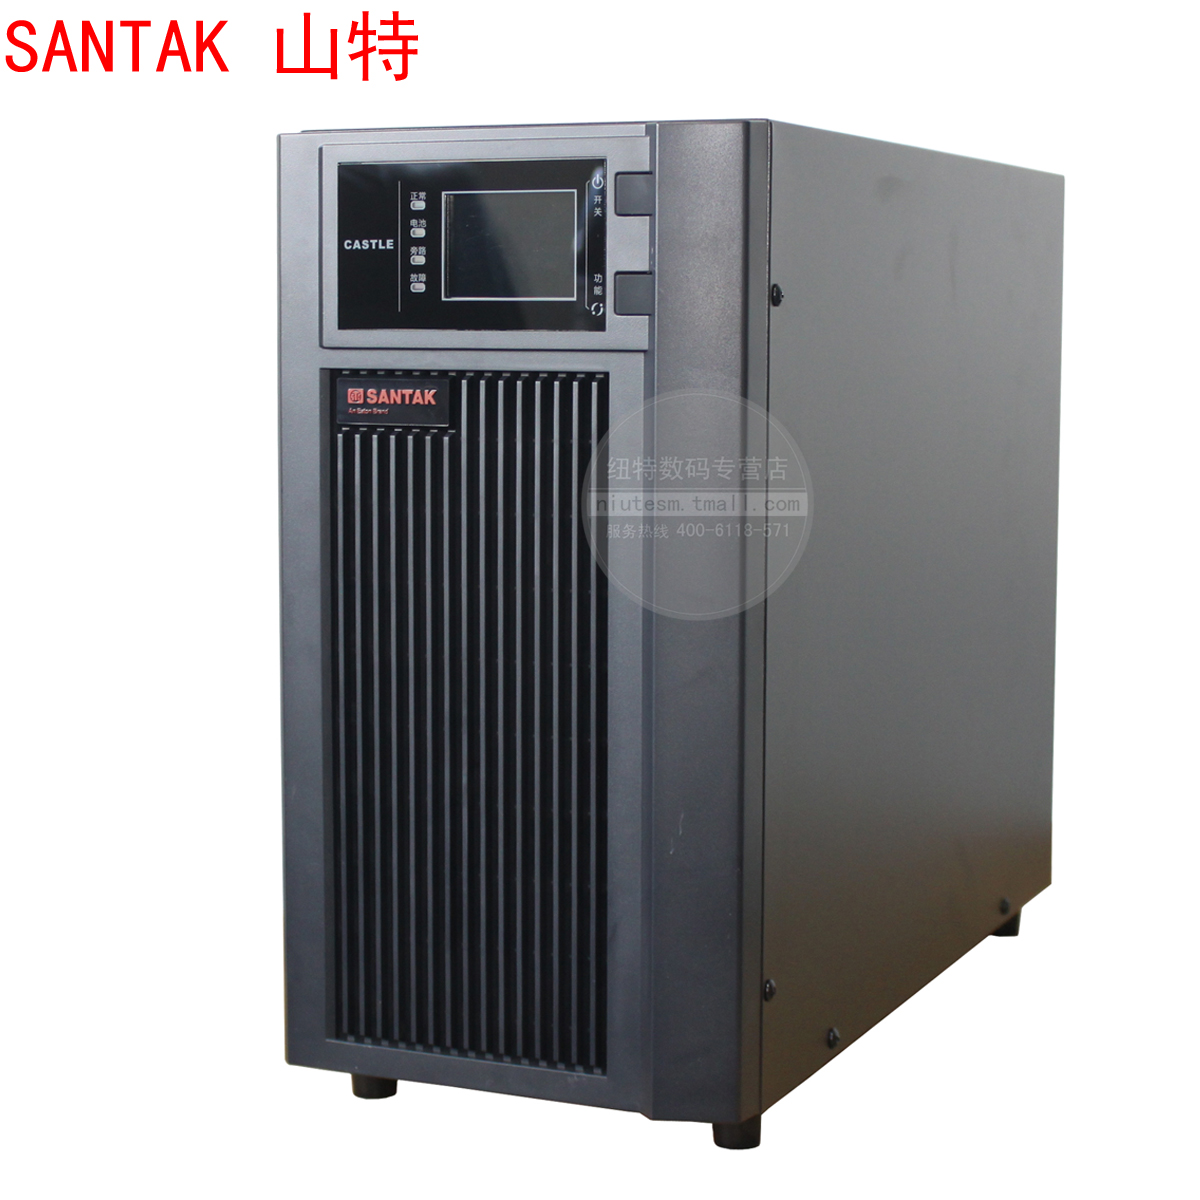 Santa UPS uninterruptible power supply C6KS 1 hour 6KVA 5400W with voltage regulator online package with good